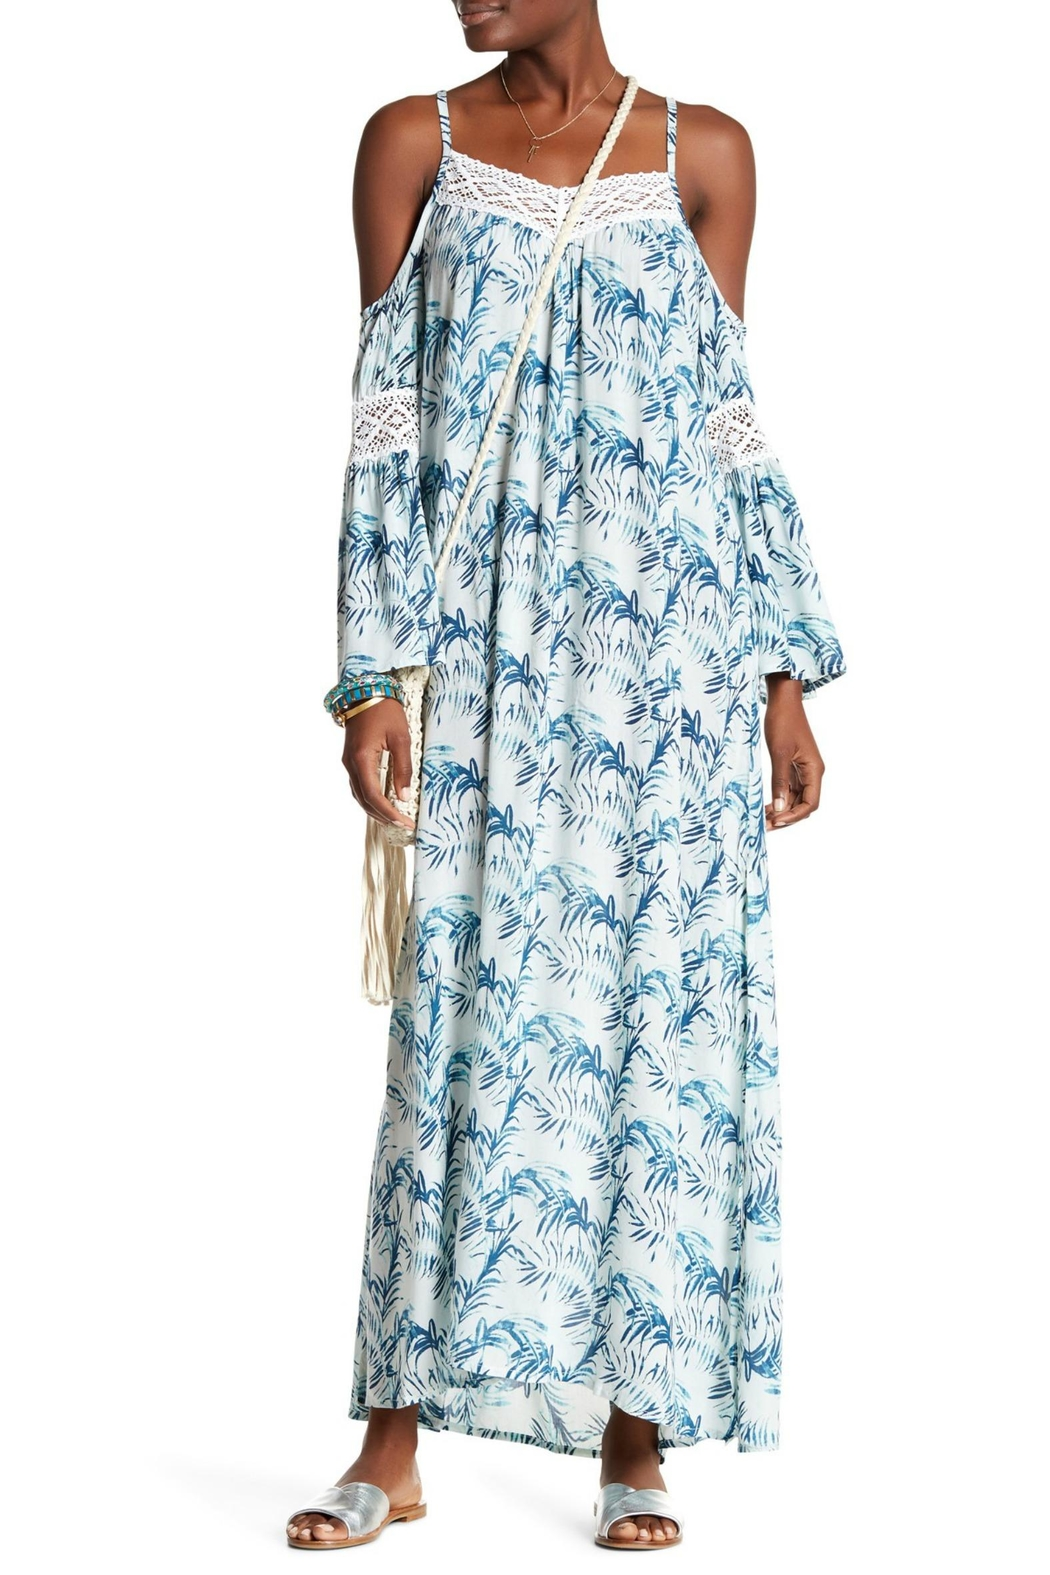 Tiare Hawaii Palm Maxi Dress - Main Image